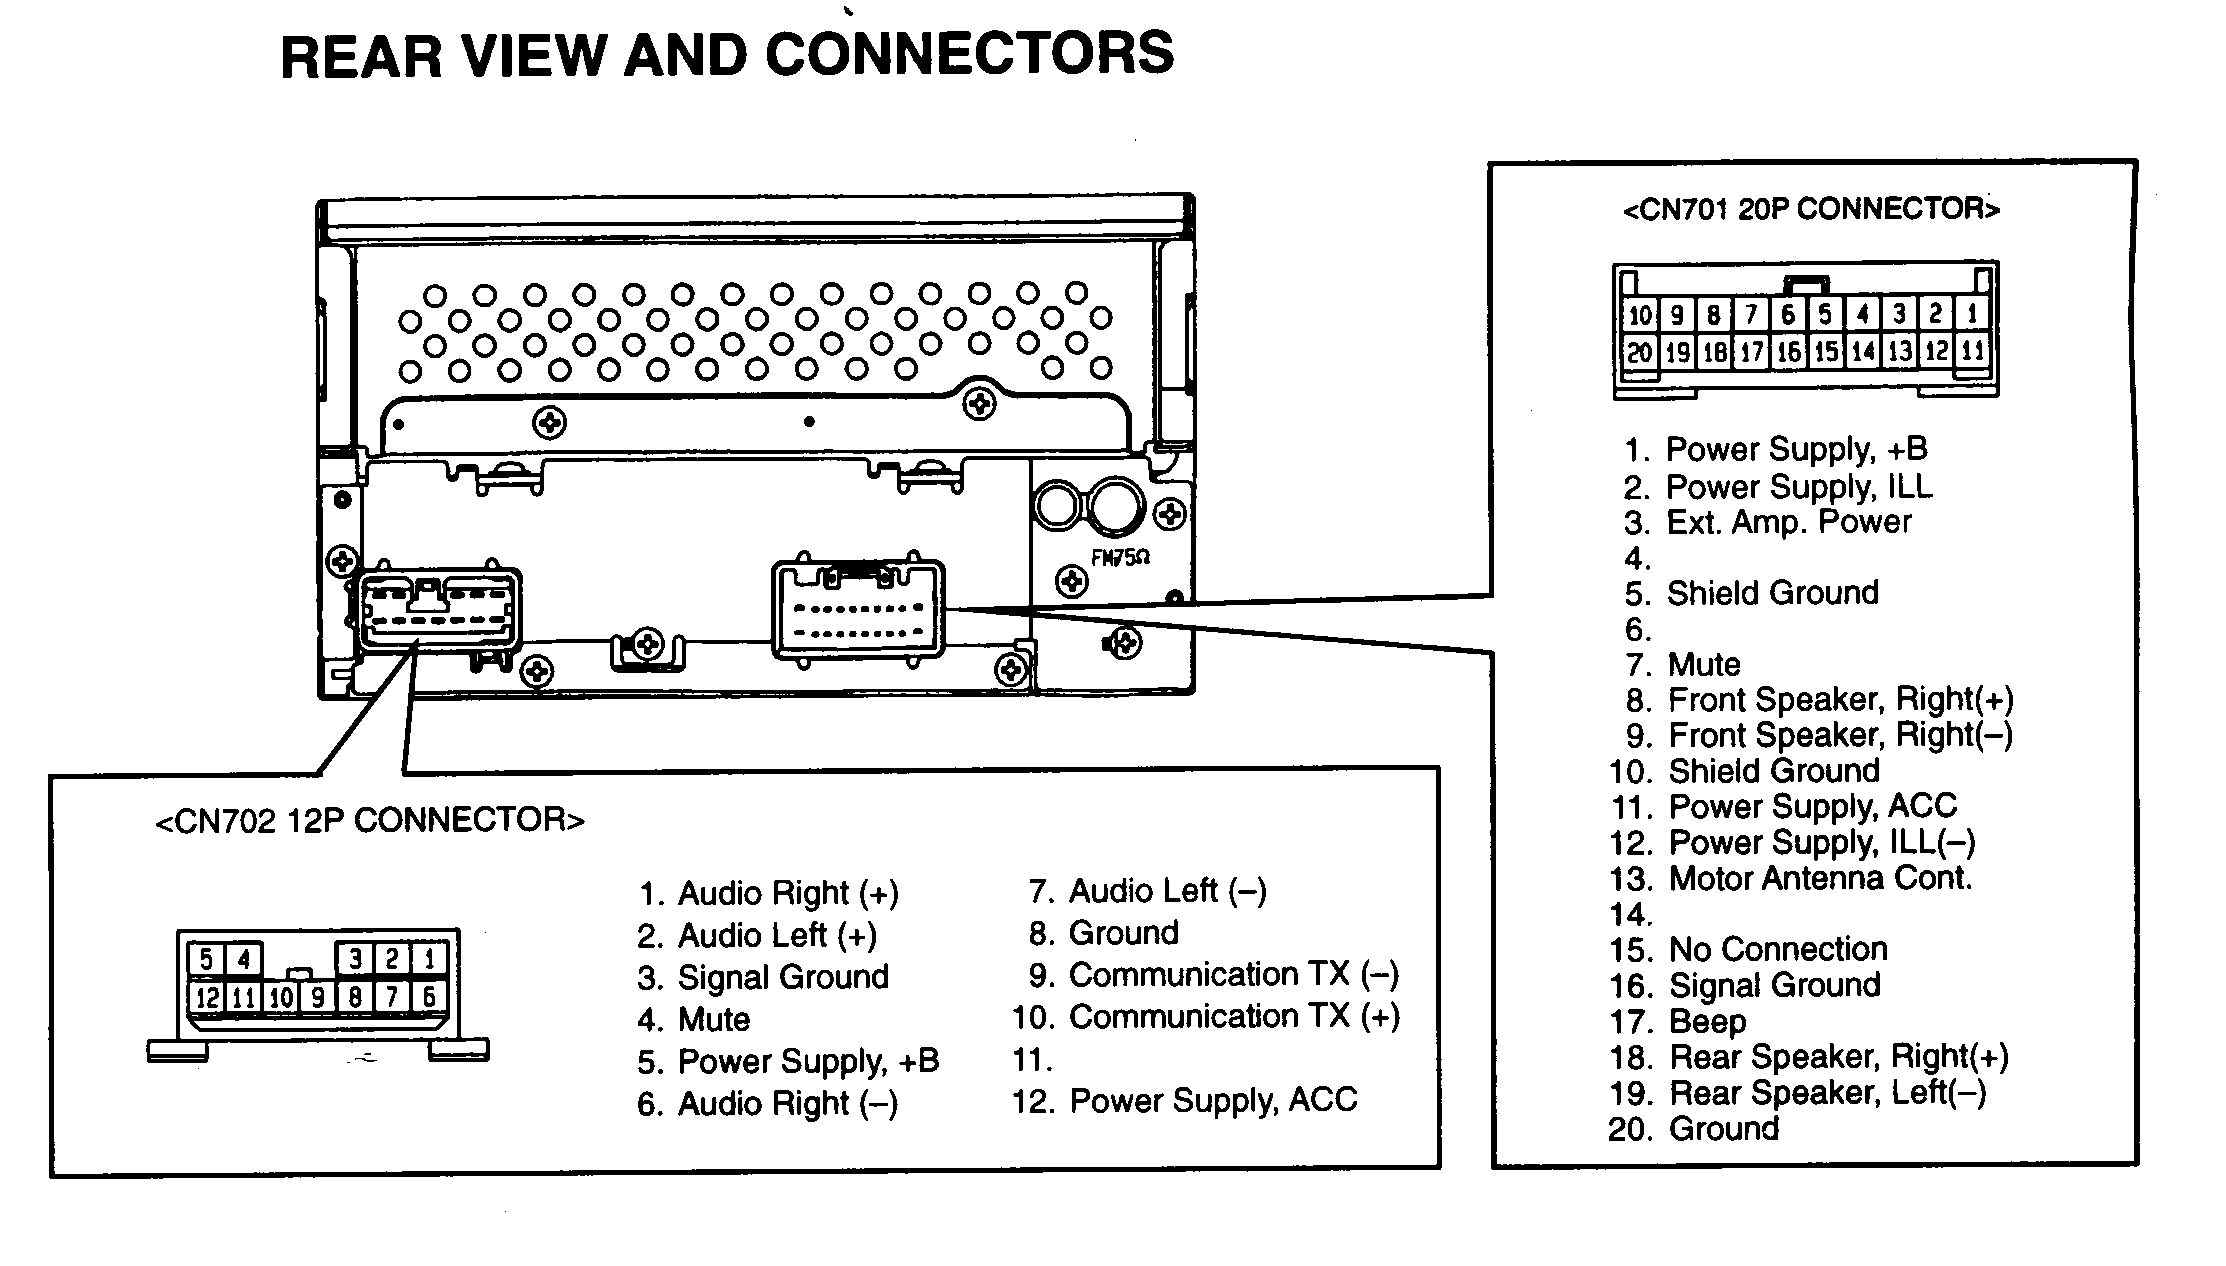 1994 Gmc Jimmy Stereo Wiring Diagram Car Diagrams Explained Radio Harness For Gm Download Audio Wire Codes Toyota Factory Repair Rh Carstereohelp Net 2001 Sierra Savana